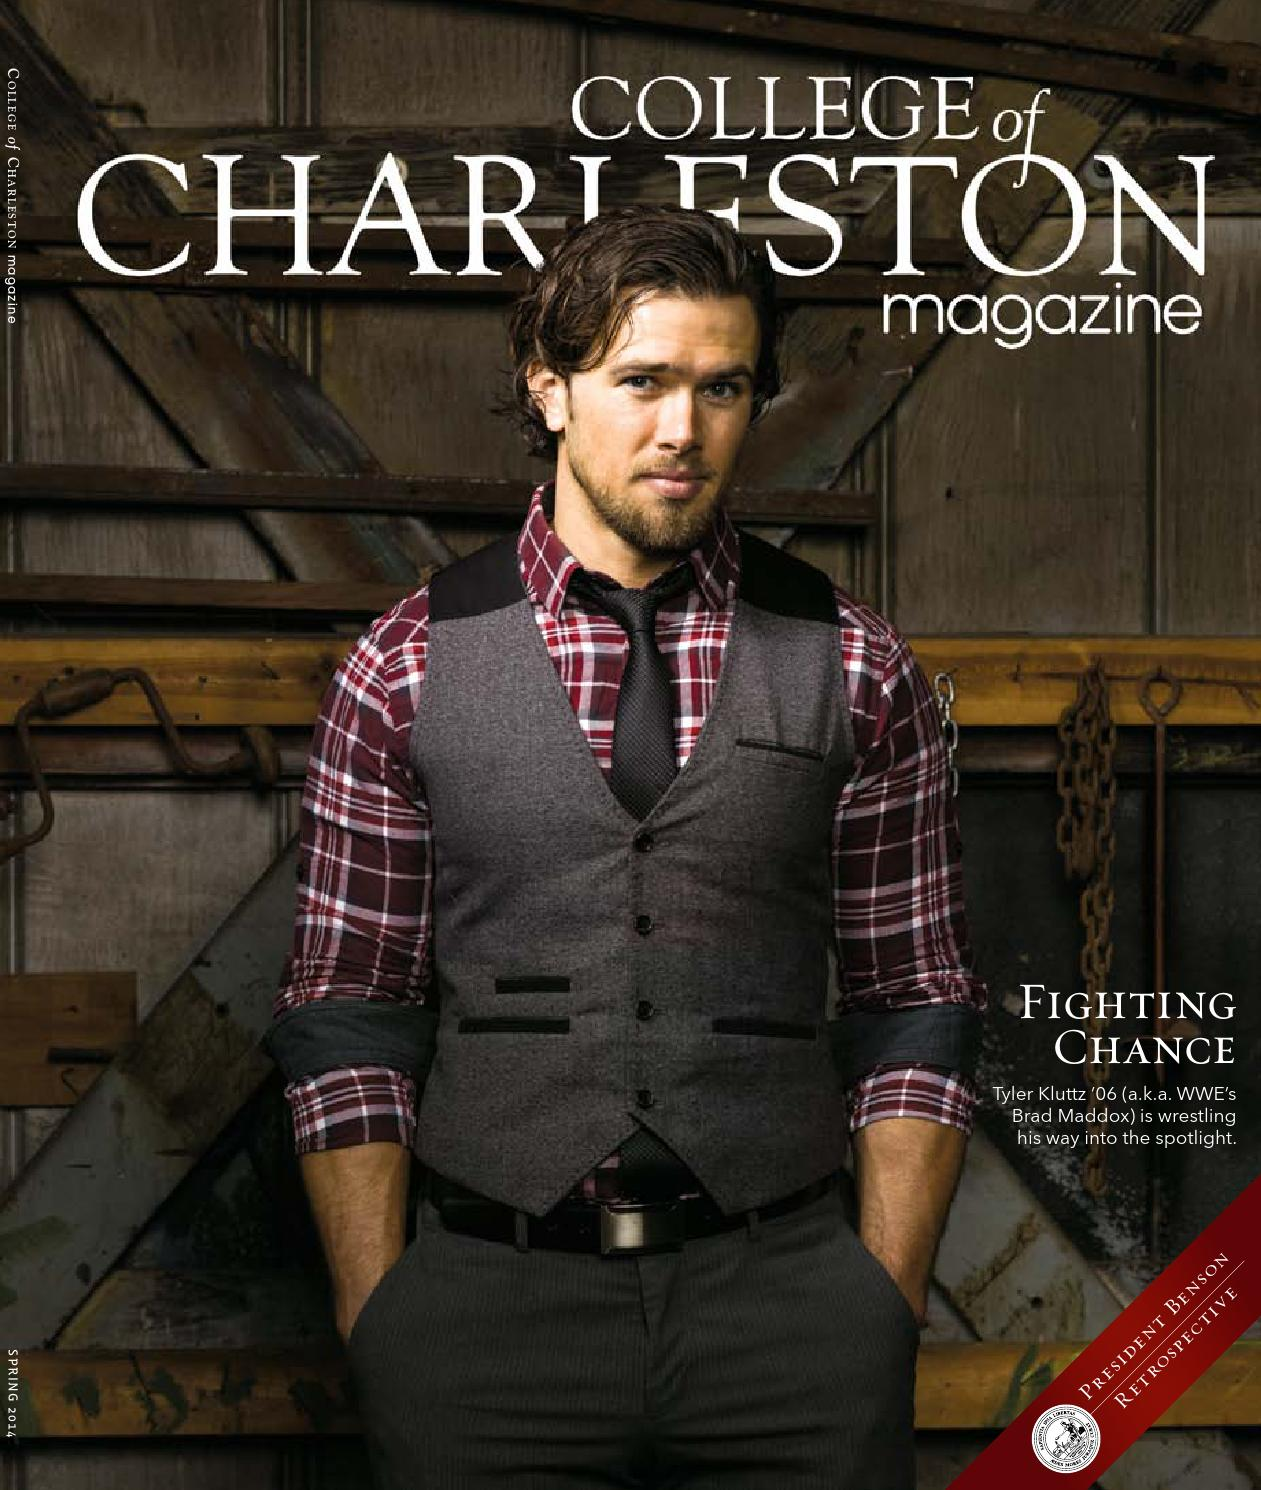 e41692f796 College of Charleston Magazine Spring 2014 by College of Charleston - issuu